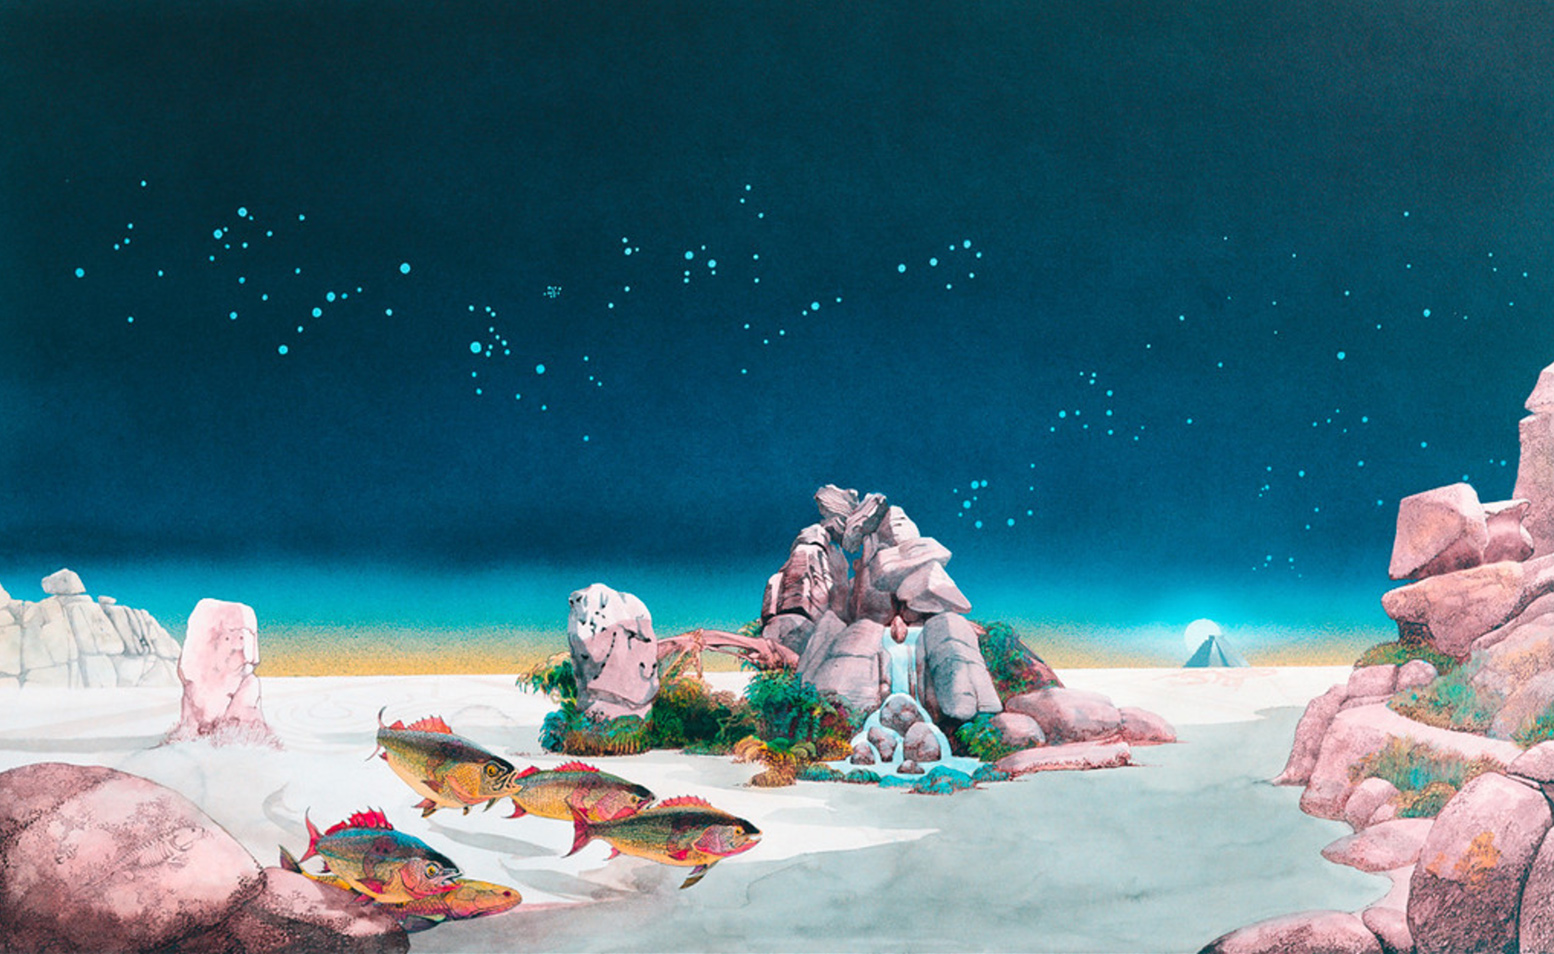 Roger Dean - Tales From Topagraphic Oceans